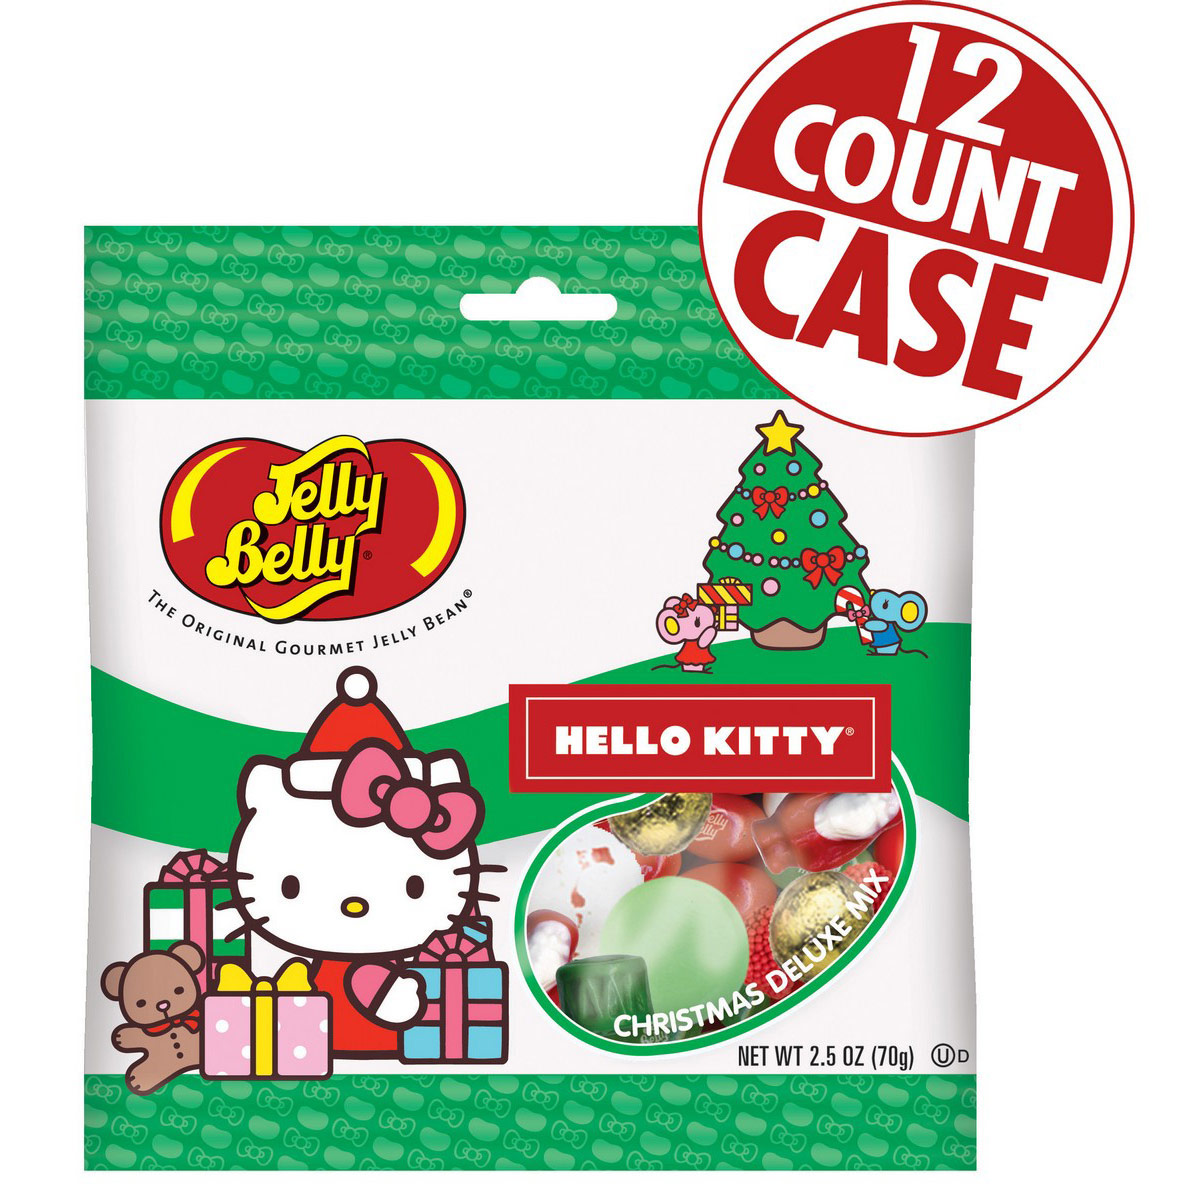 Hello Kitty<sup>&reg;</sup> Jelly Belly Christmas Deluxe Mix - 2.5 oz Gift Bag - 12 Count Case